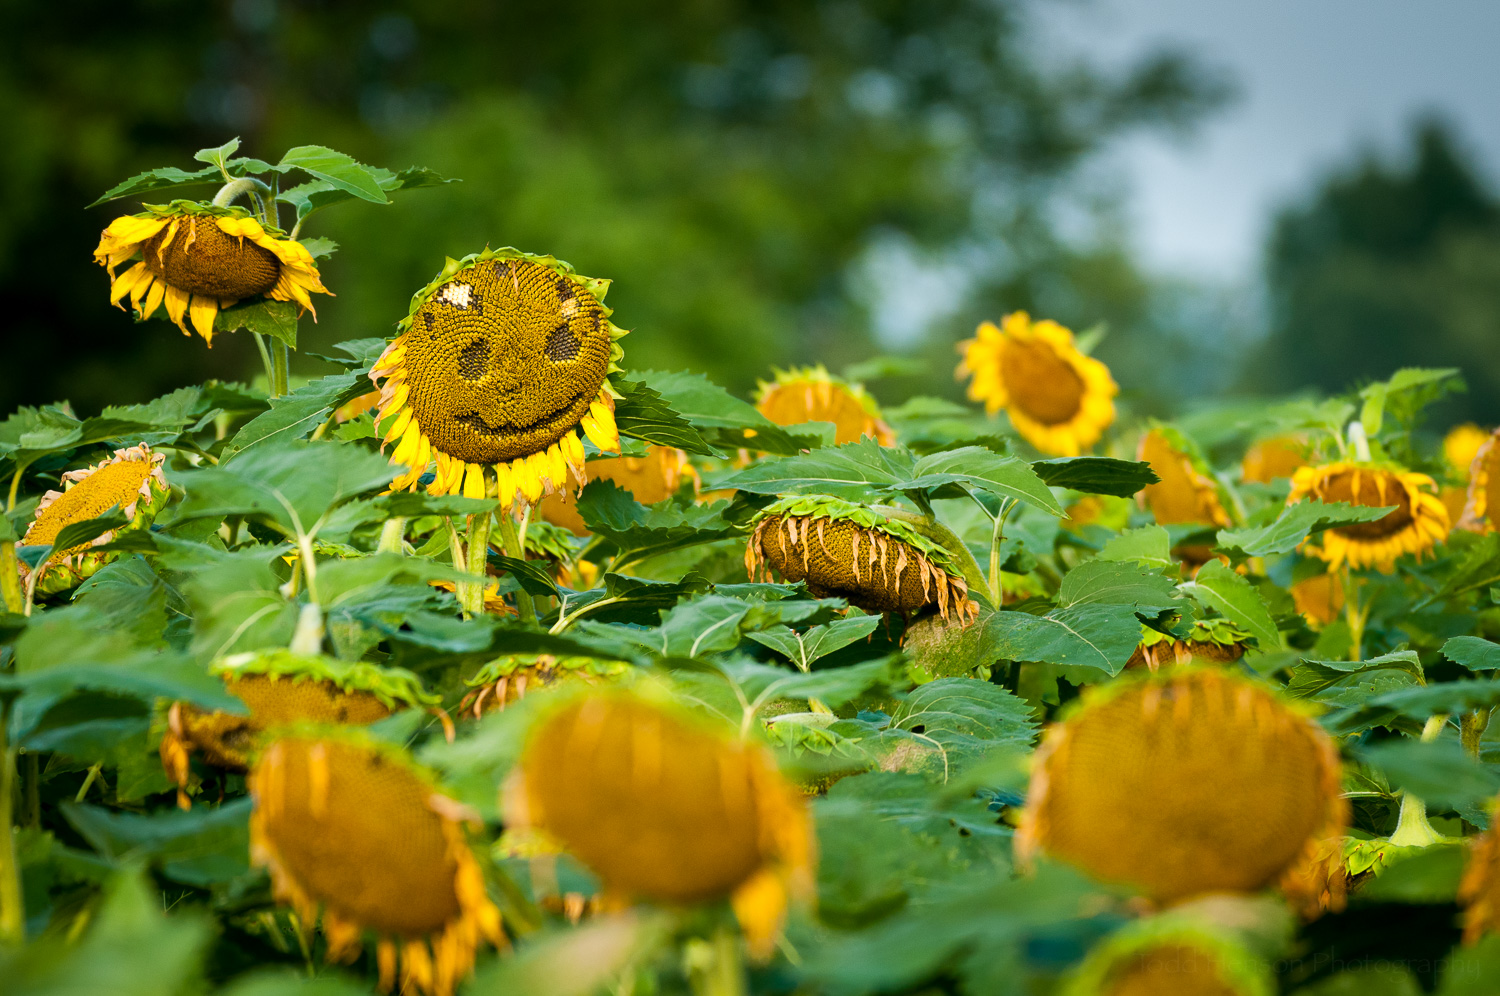 There's always something to smile about, even when surrounded by a field of drooping sunflowers.